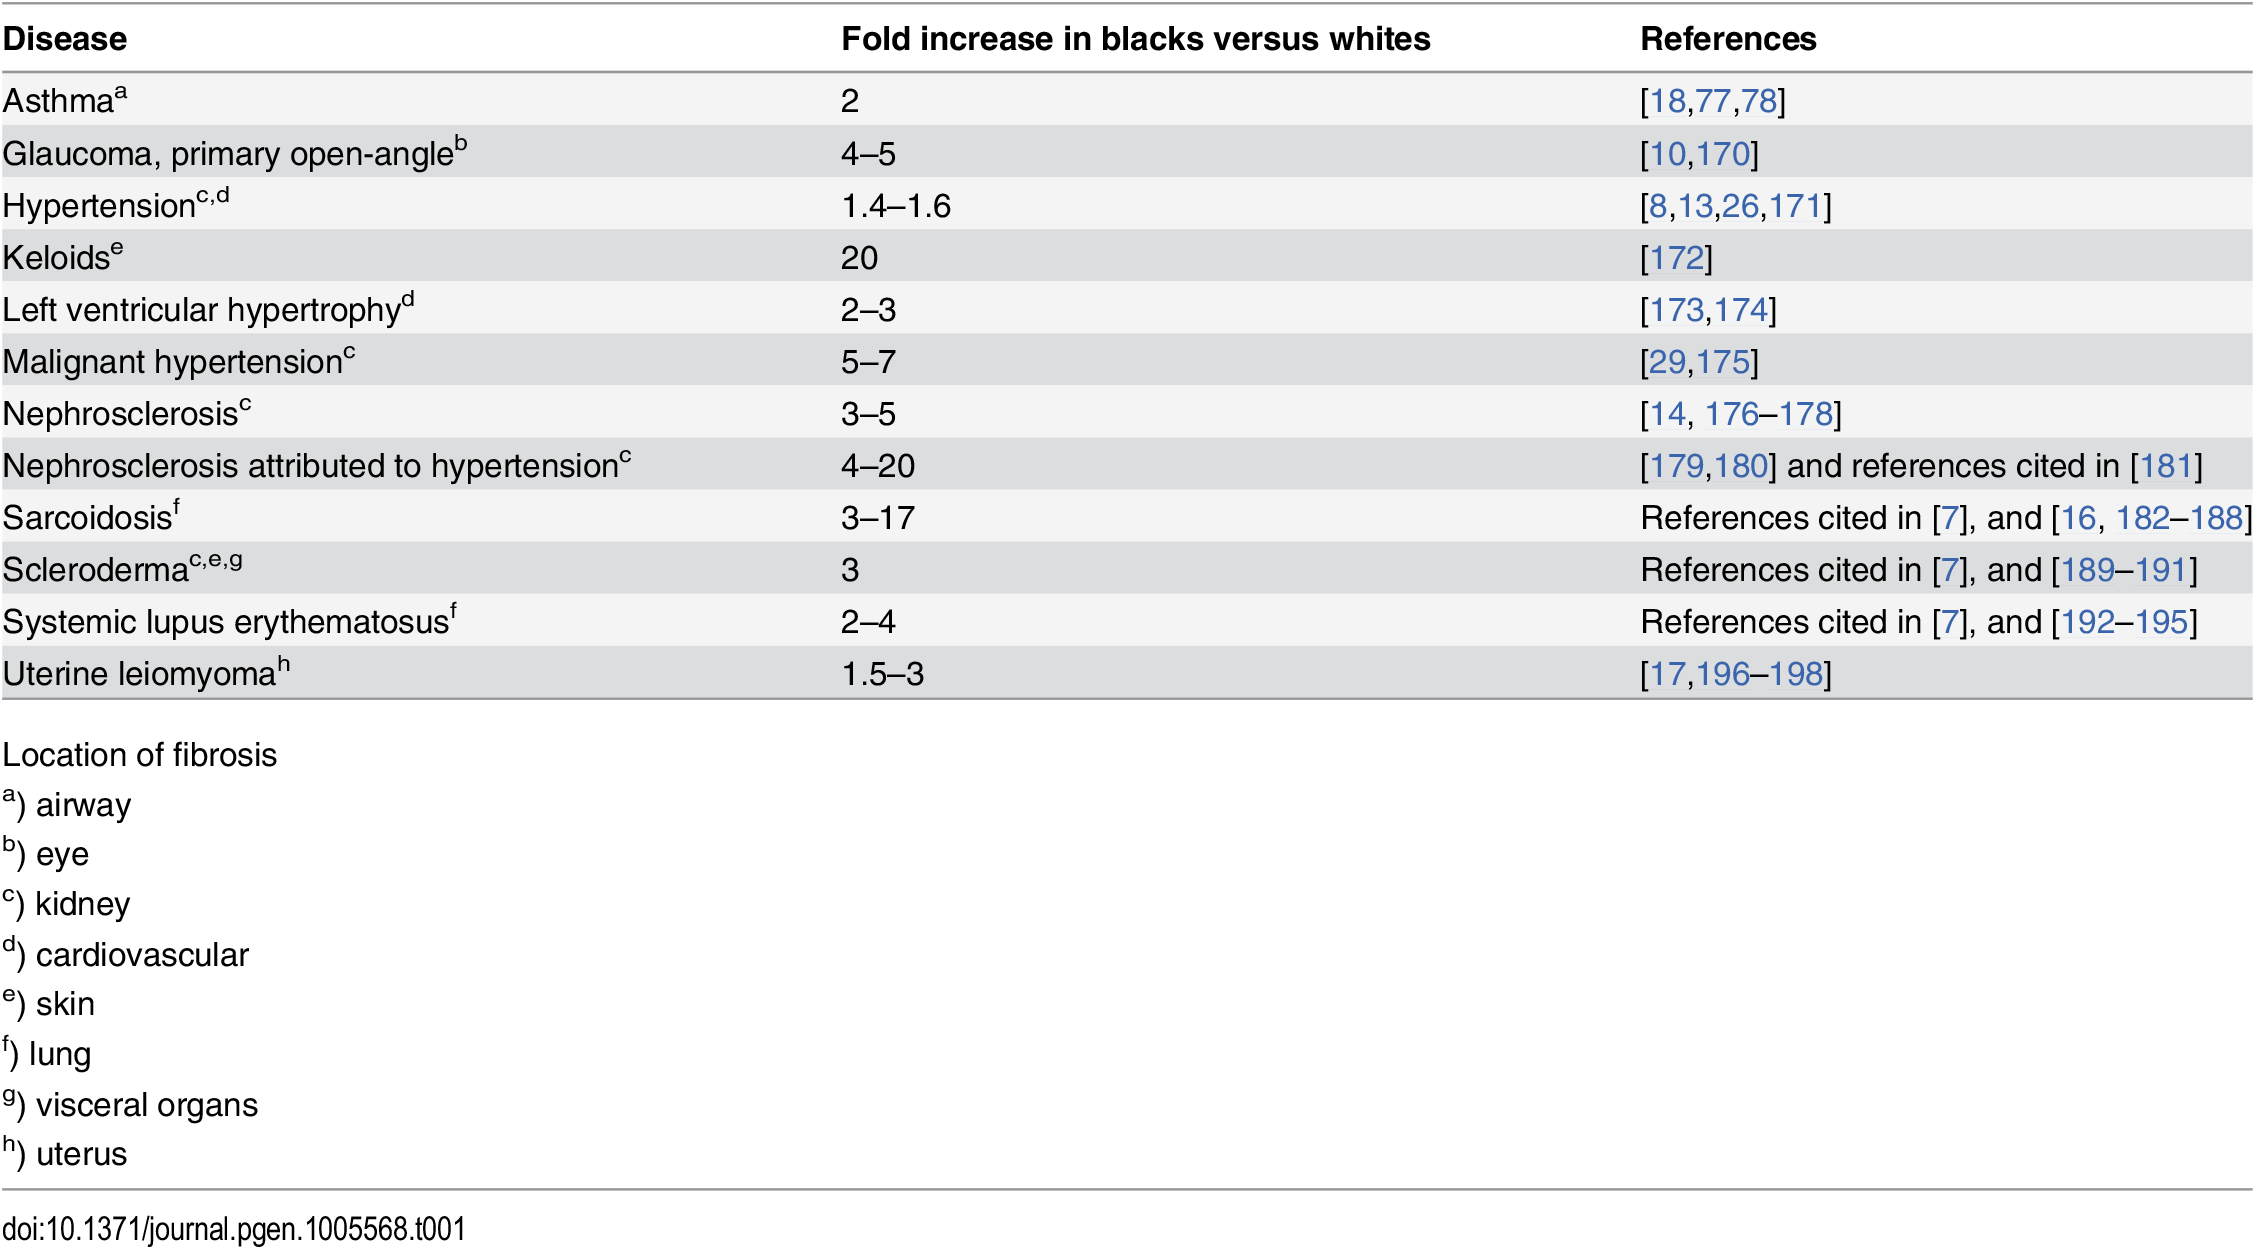 Relative frequencies of certain fibroproliferative diseases in black and white populations.